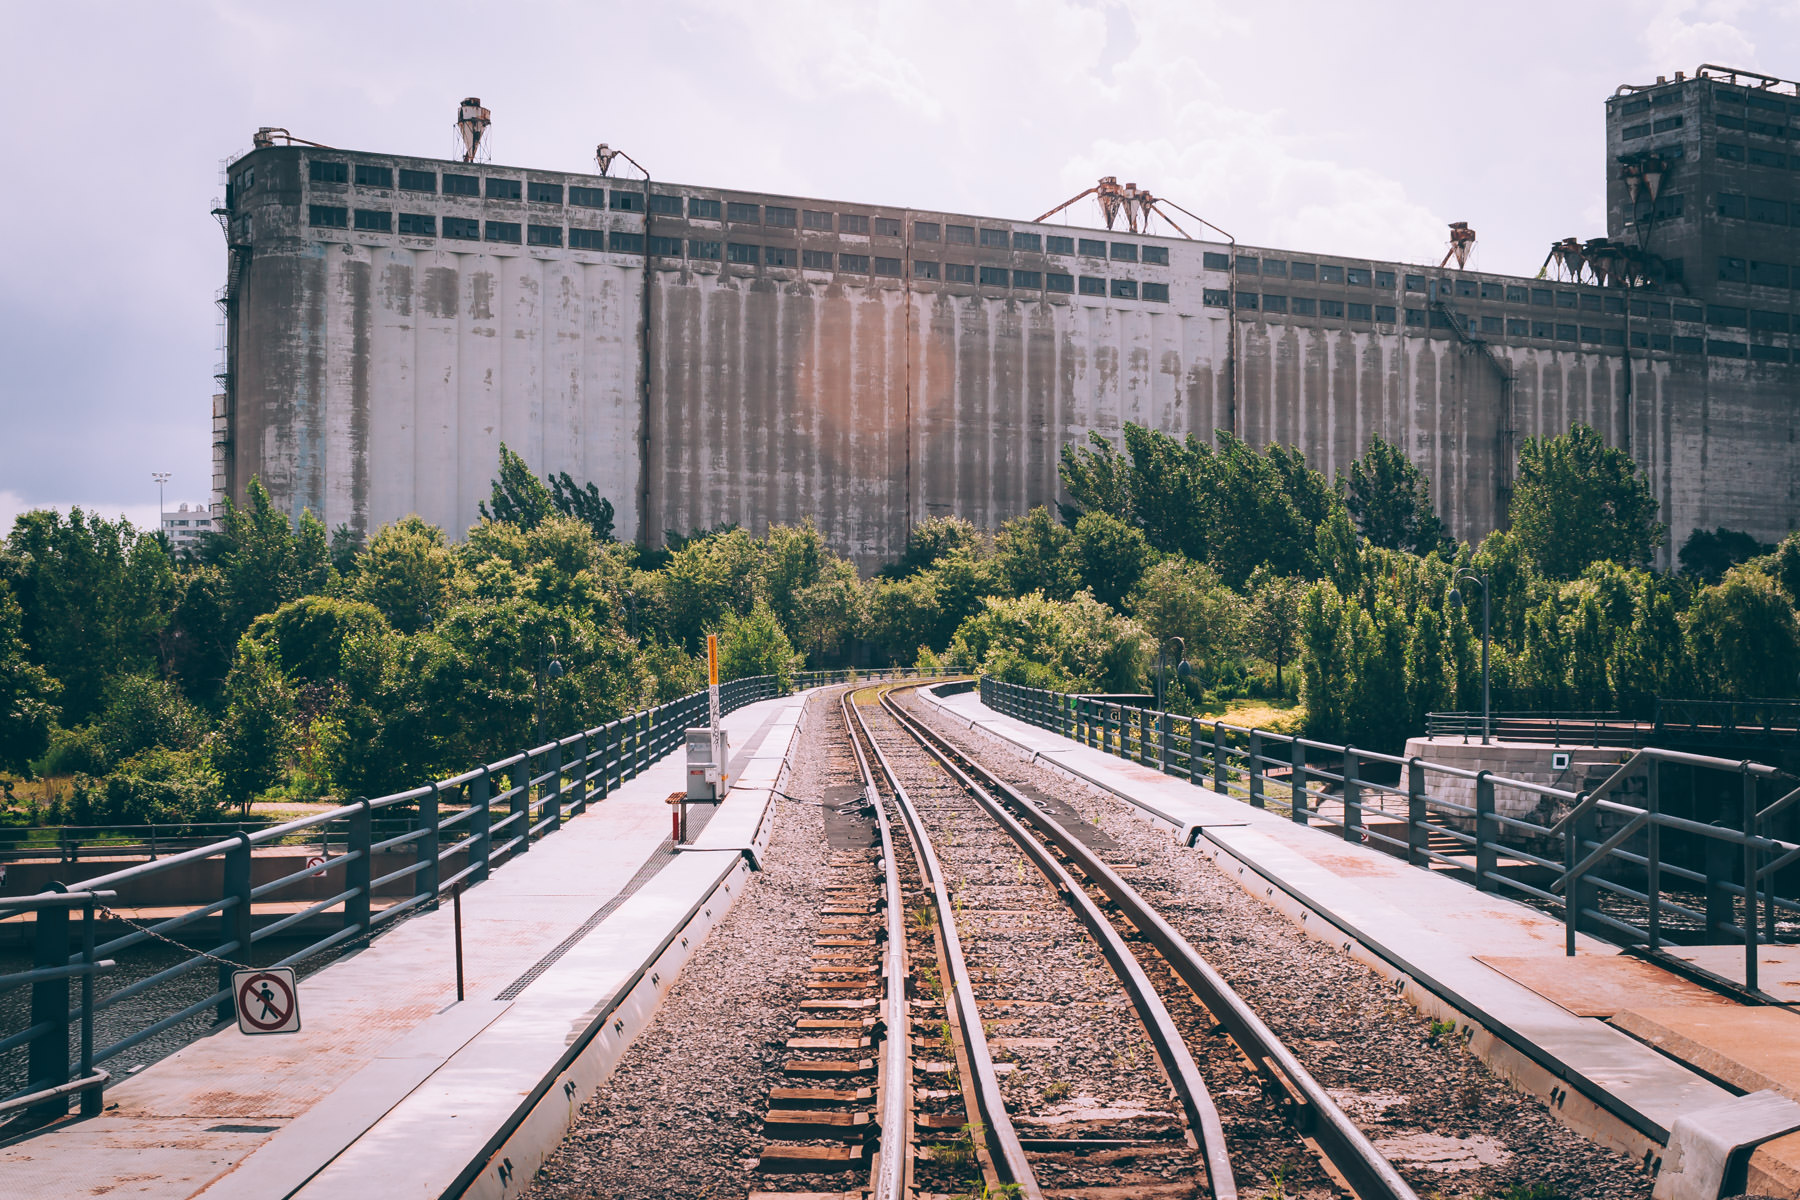 A massive grain silo along the Canal de Lachine in Vieux-Port de Montréal.